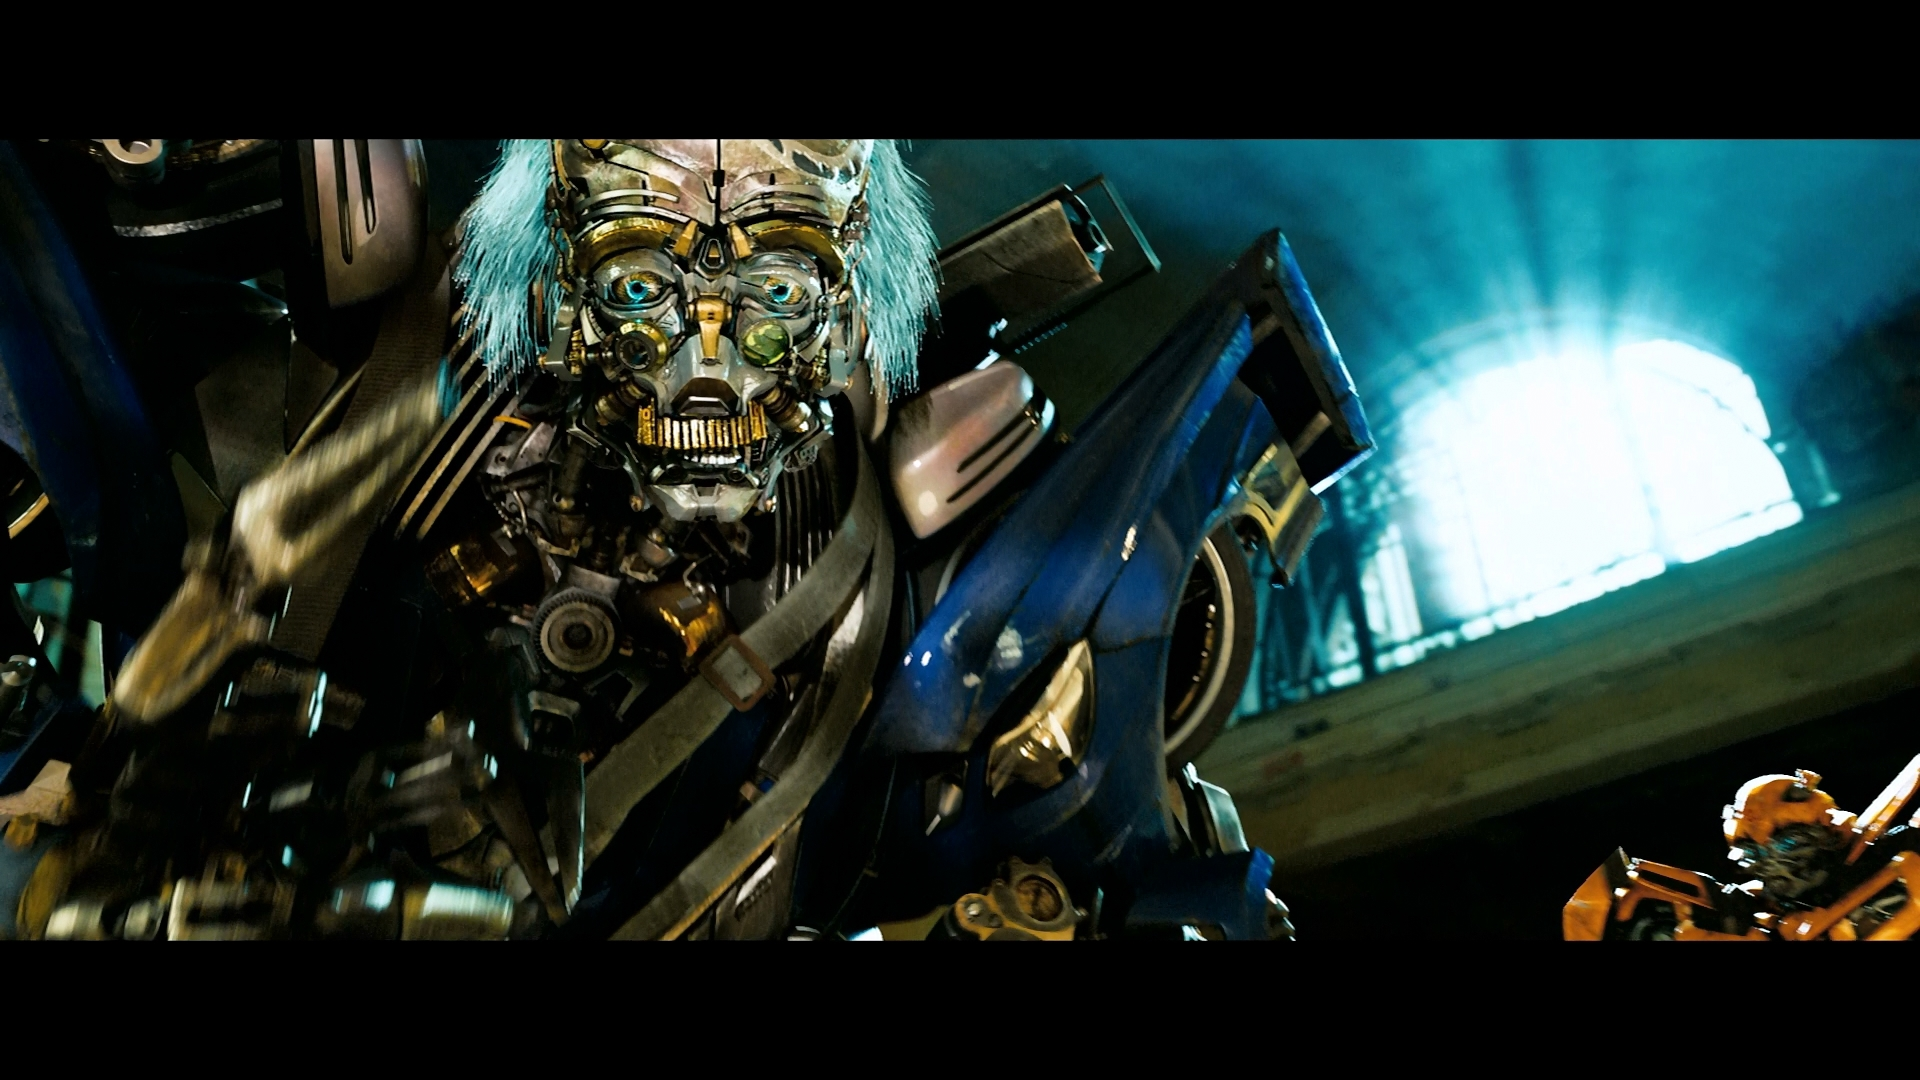 Full resolution      1 920   215  1 080 pixels  file size  939 KB  MIME    Que Transformers 3